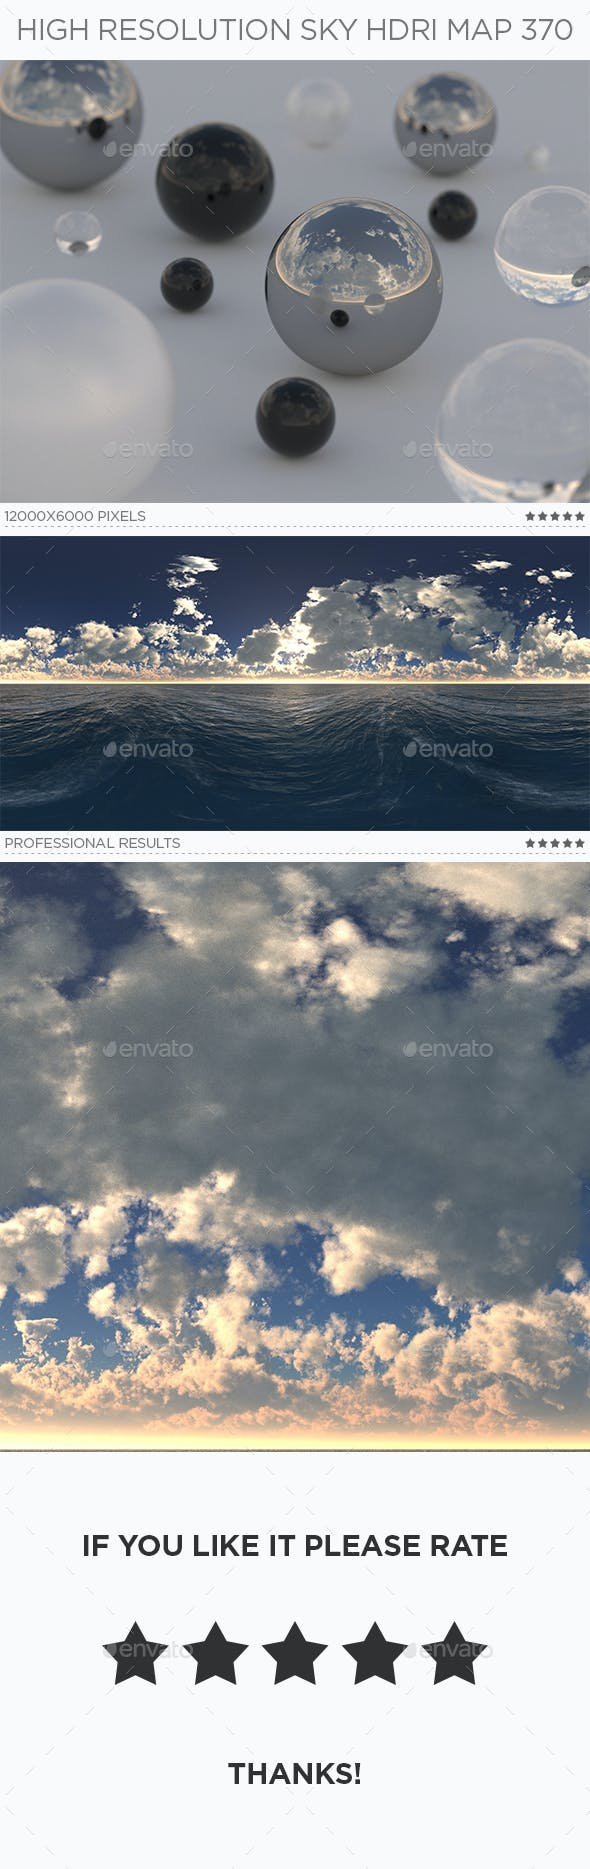 High Resolution Sky HDRi Map 370 - 3DOcean Item for Sale